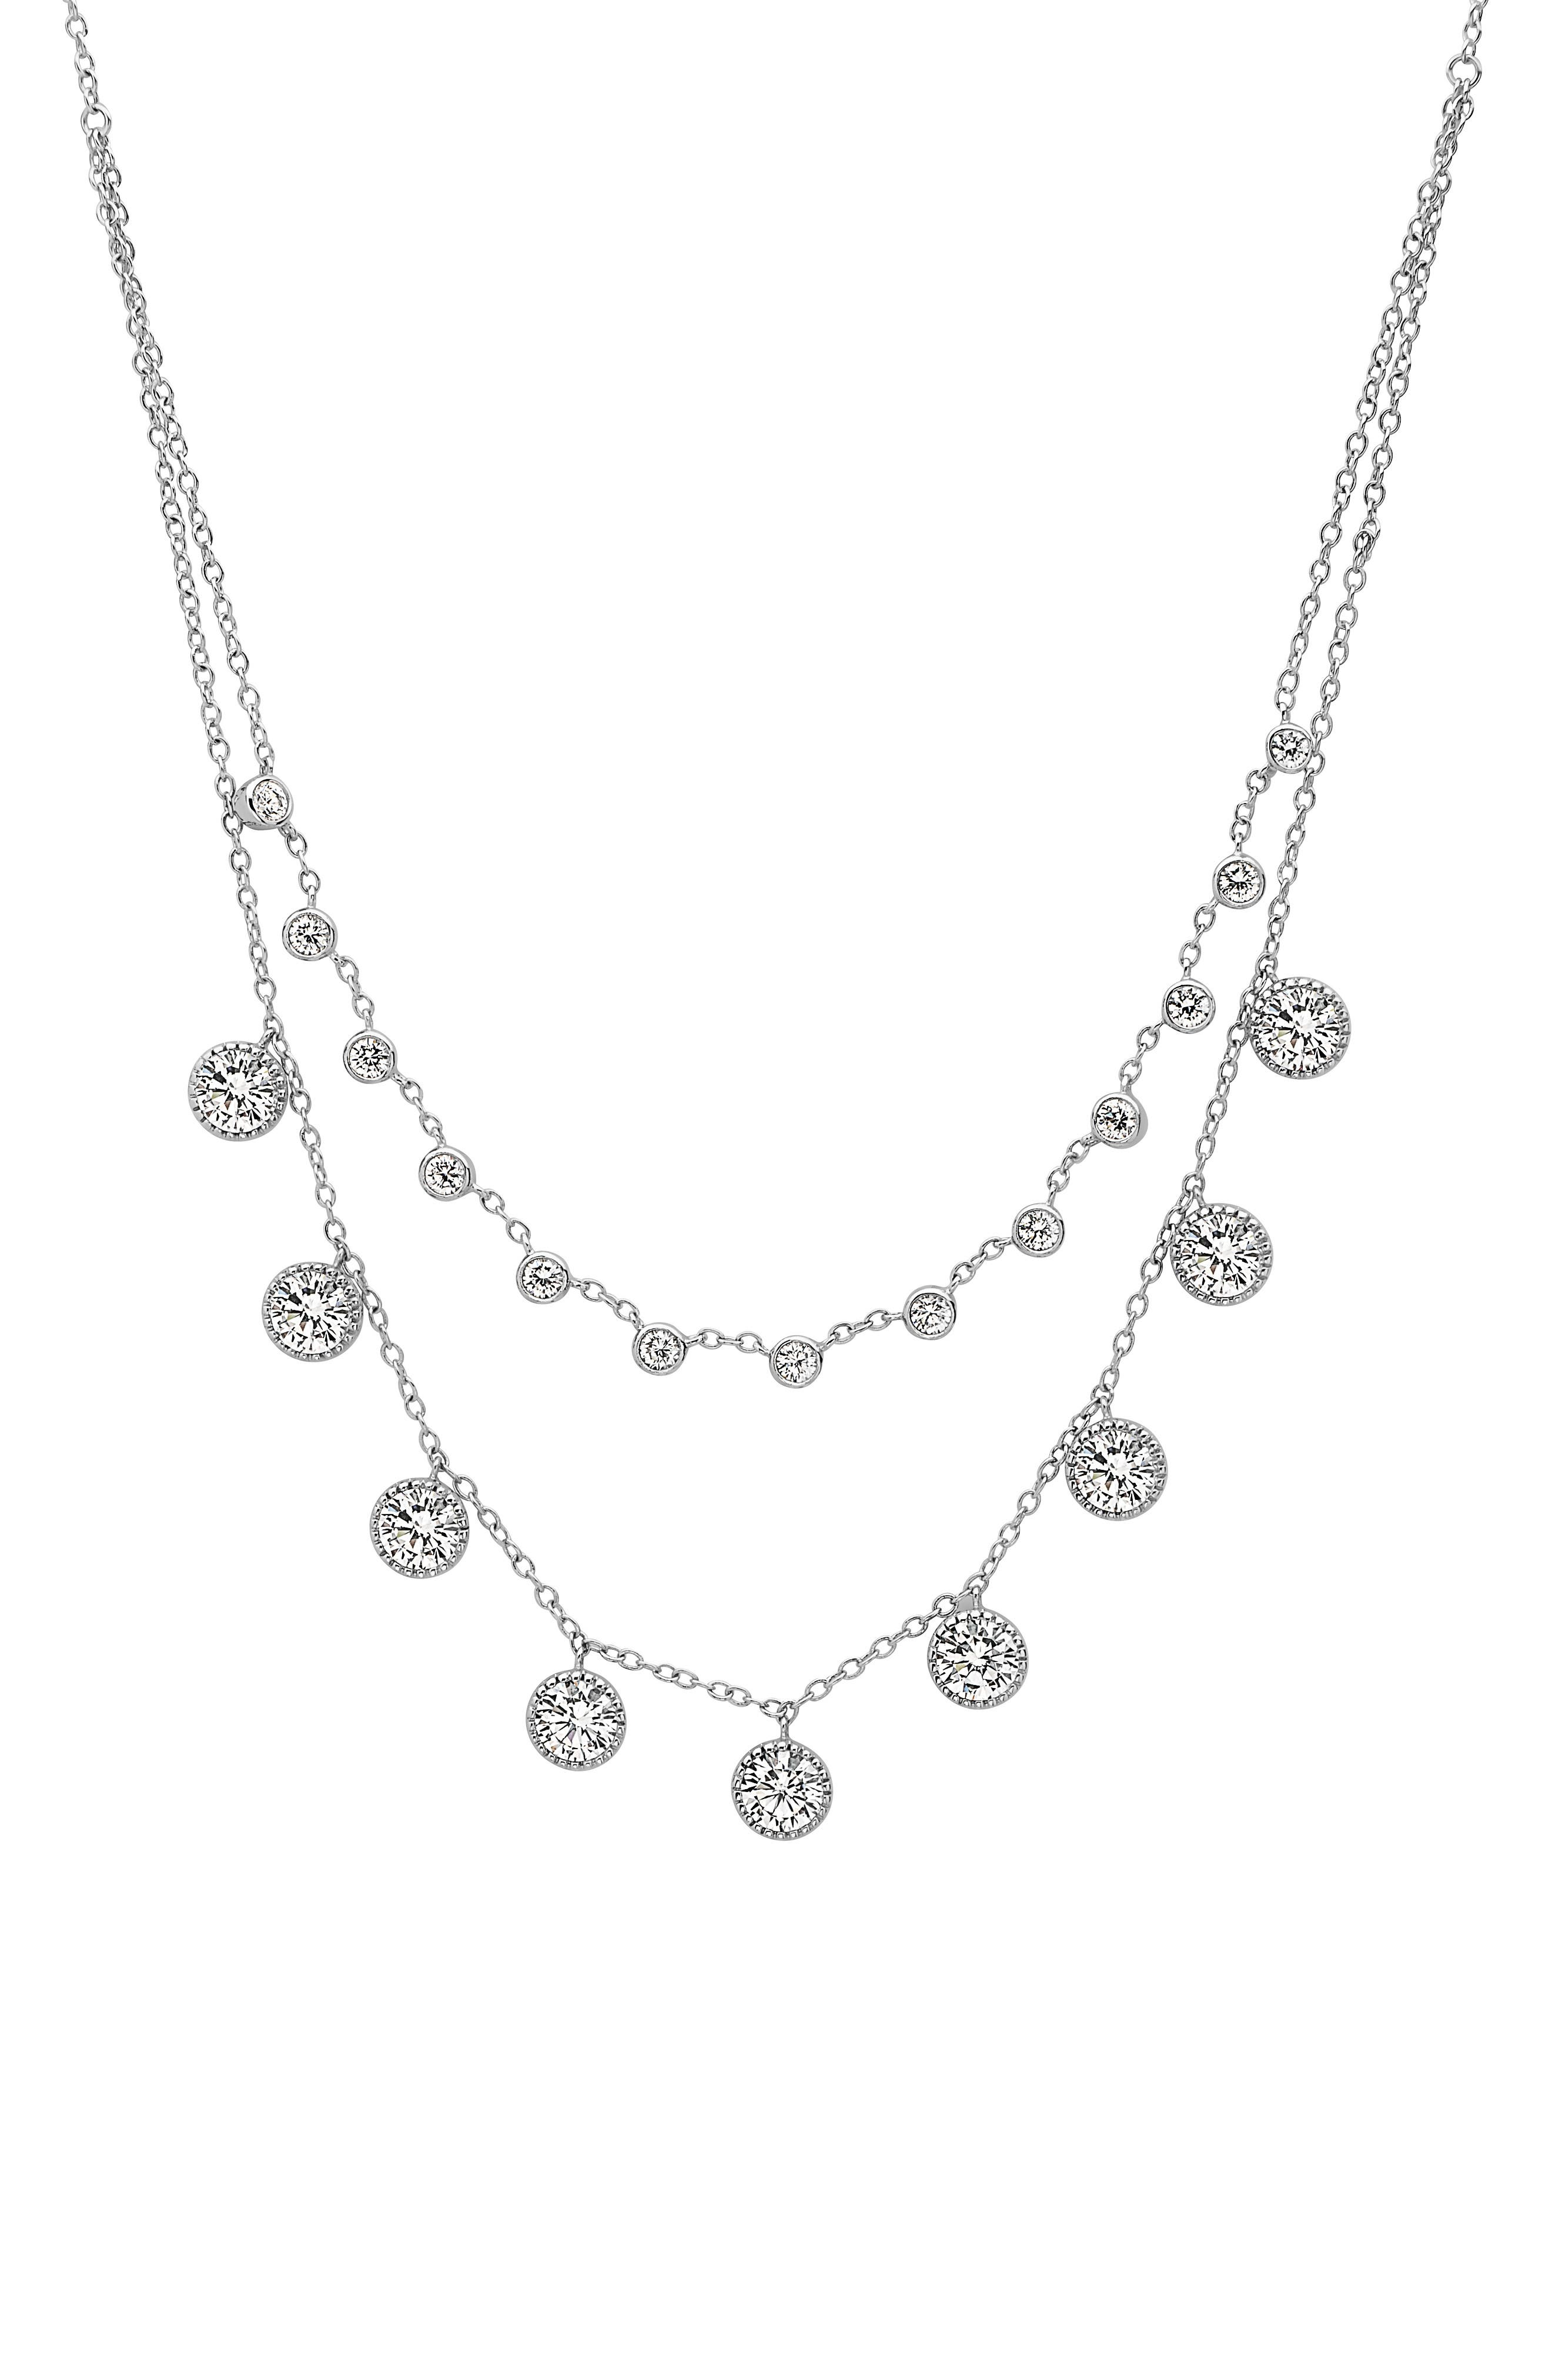 Frontal Necklace,                             Main thumbnail 1, color,                             040